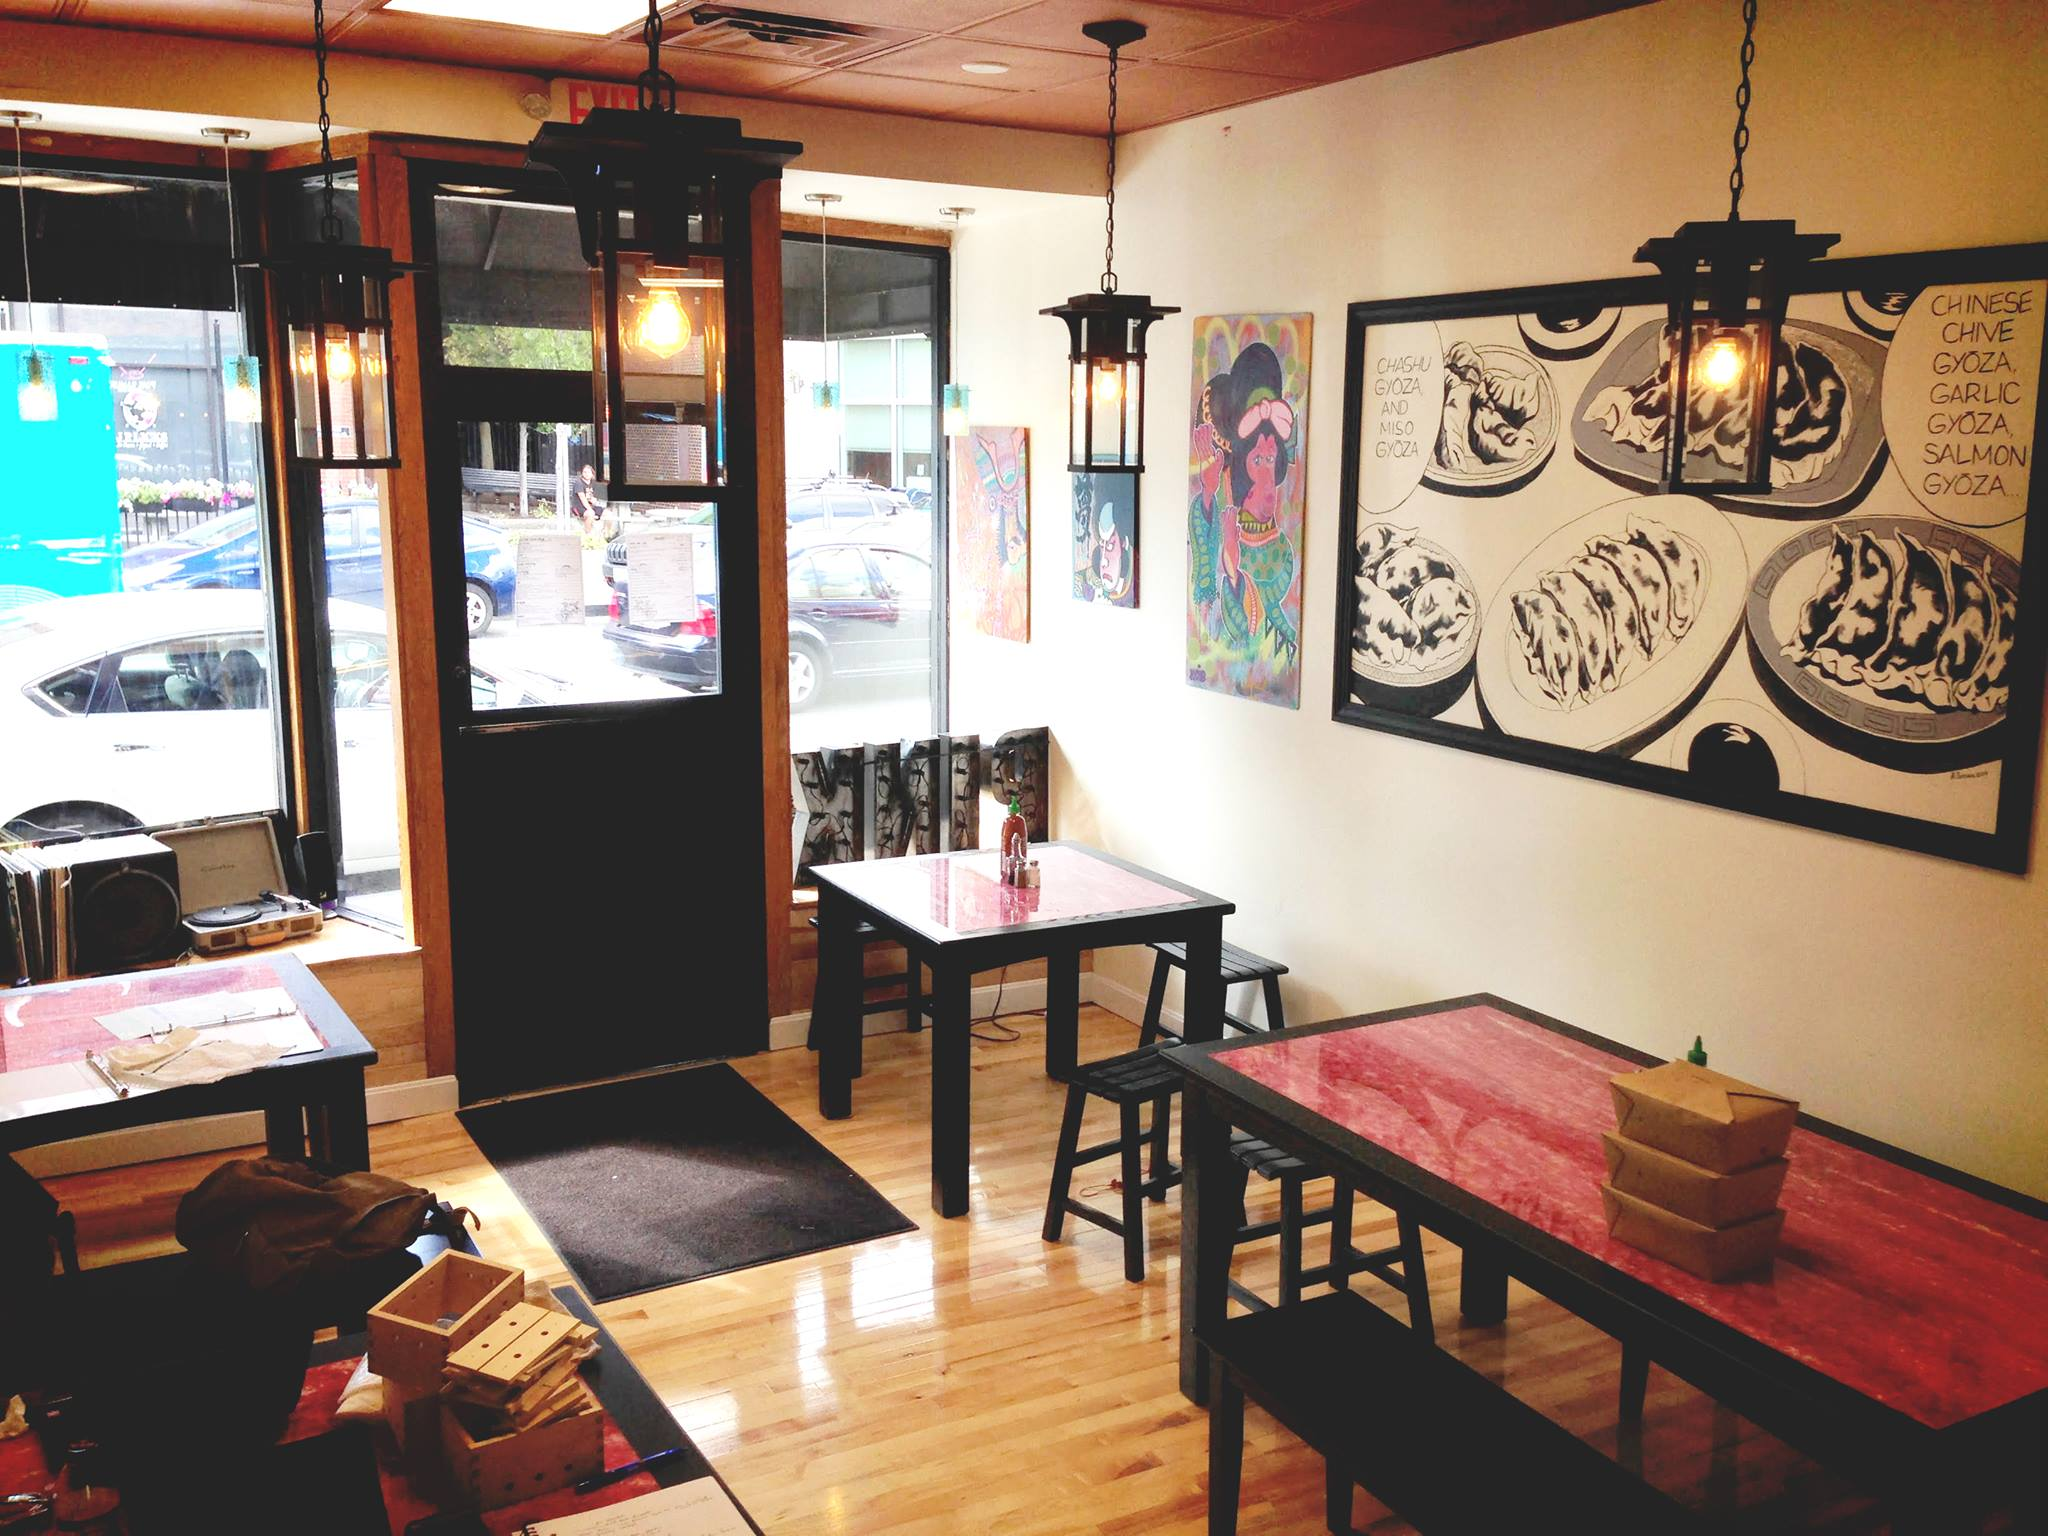 Tous les jours says bonjour to downtown boston eater boston for The brook kitchen and tap